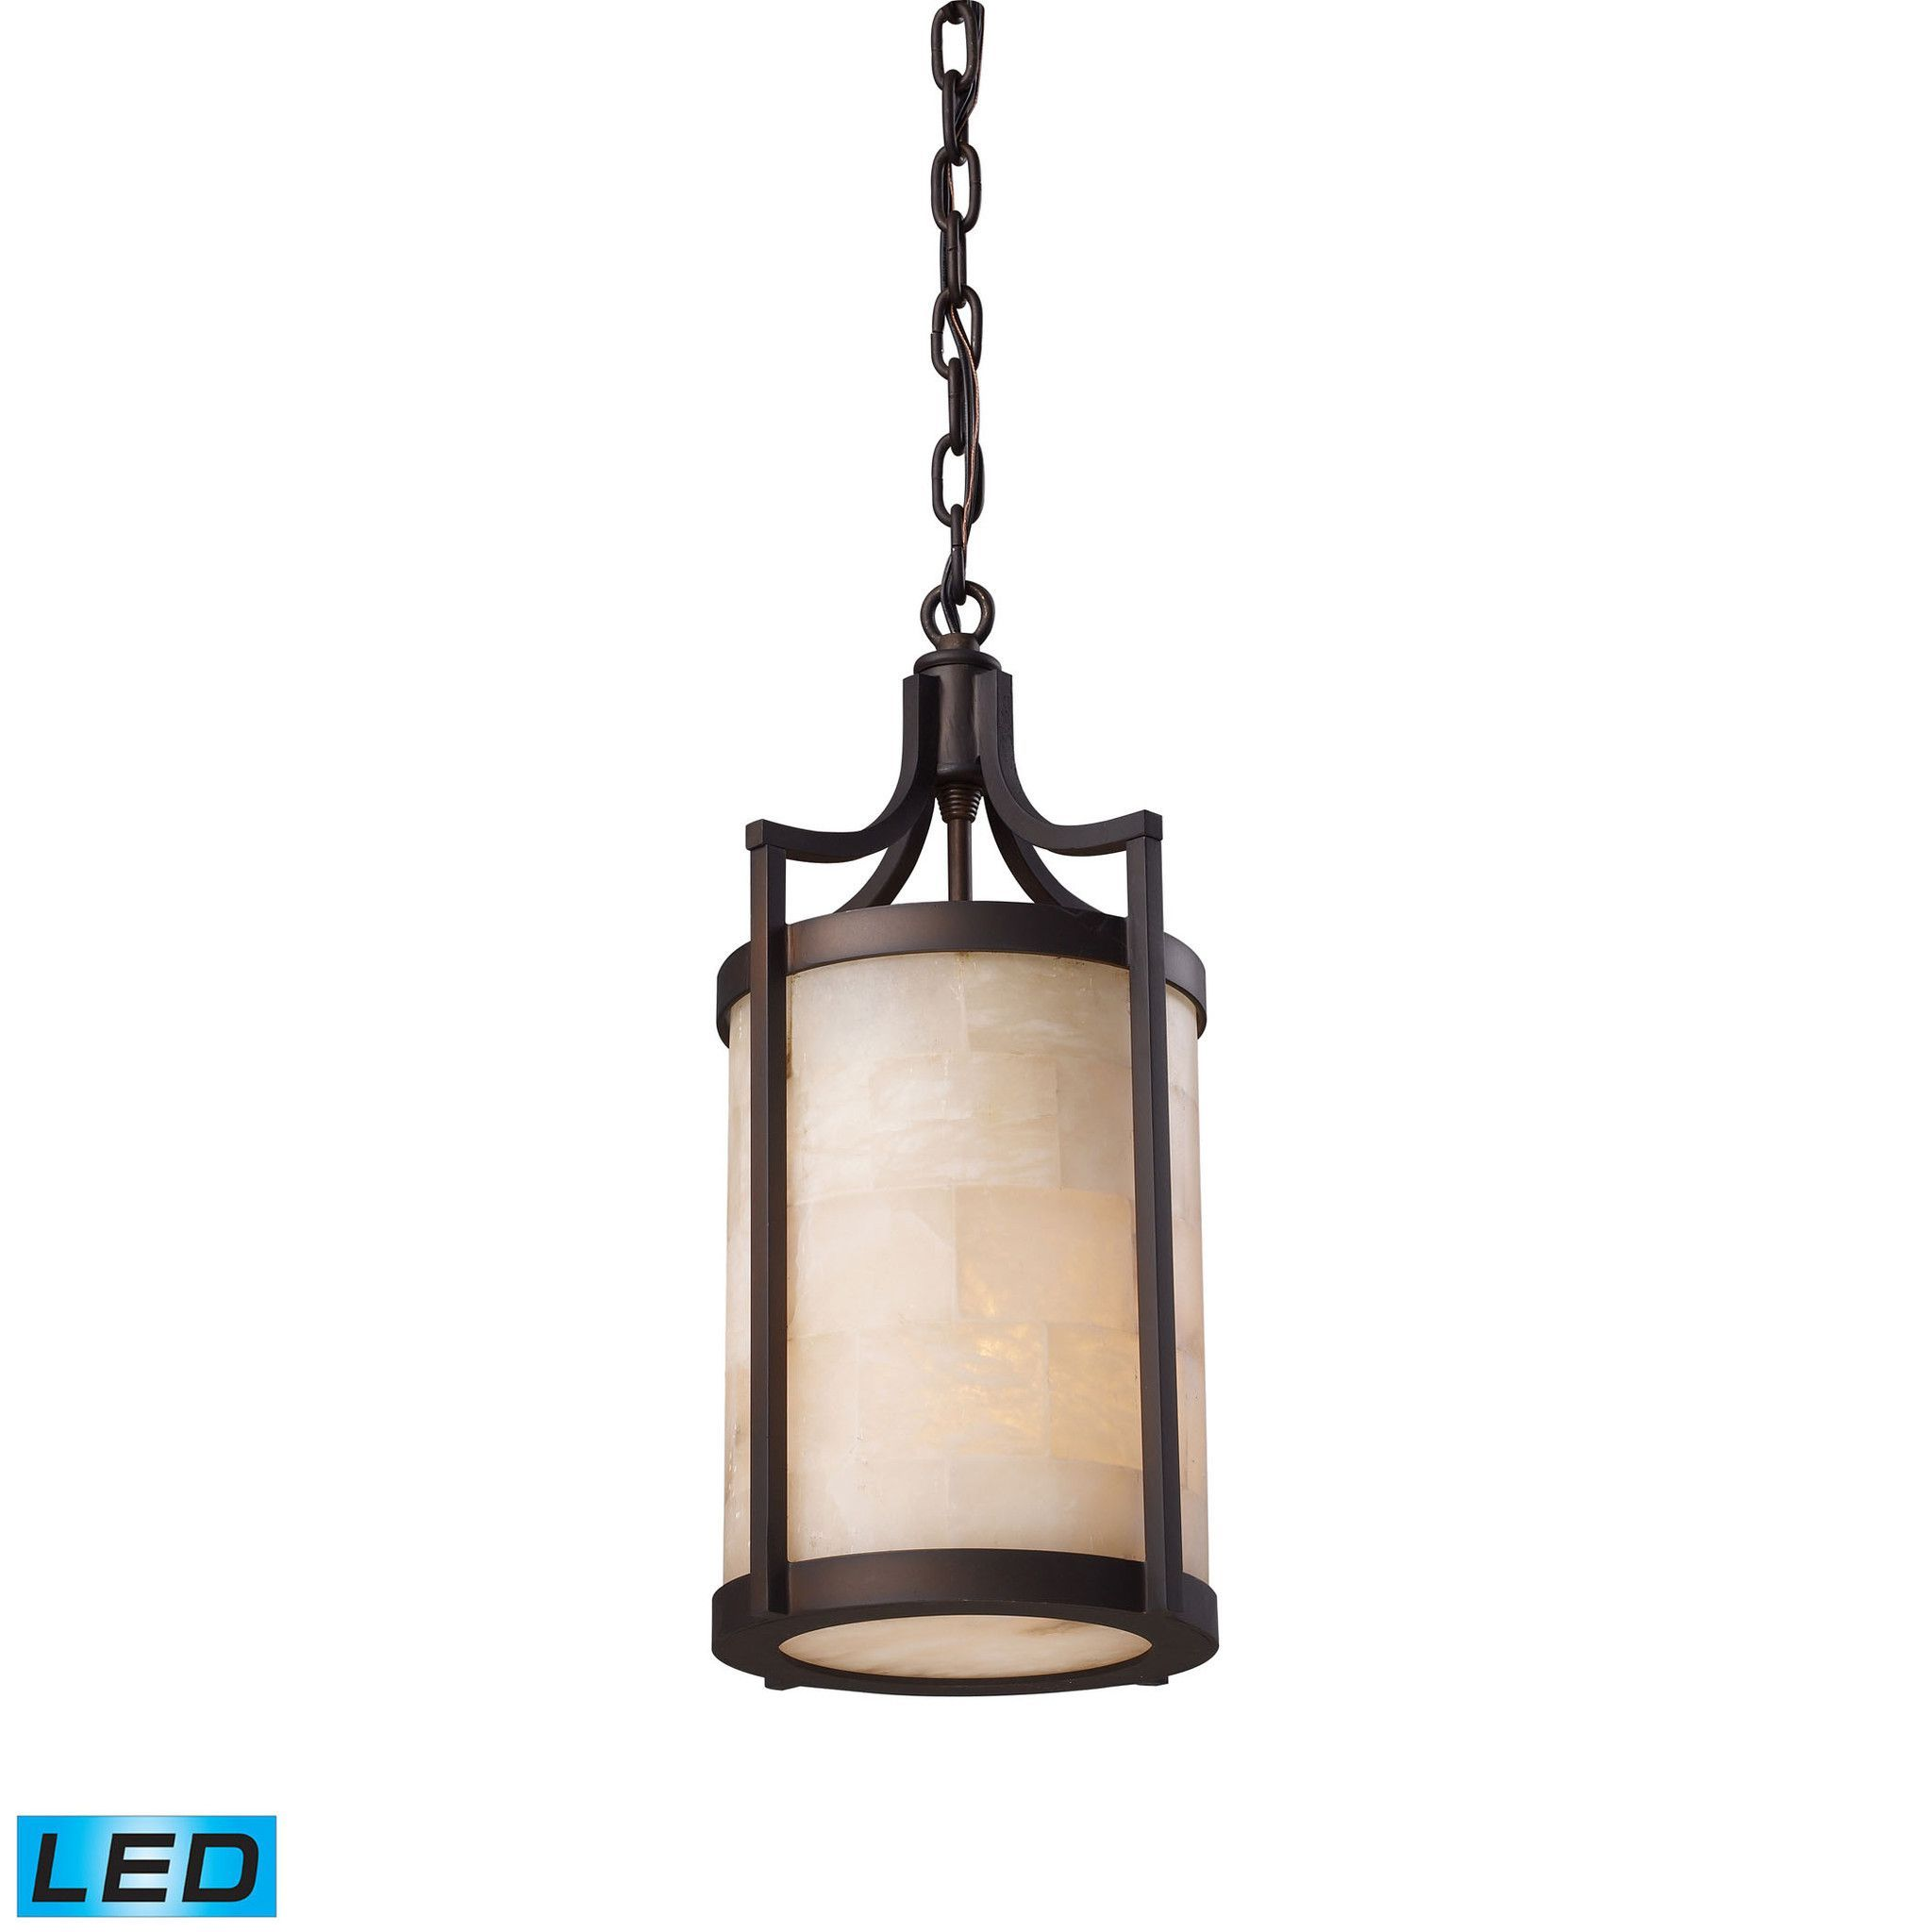 ELK Lighting 19000/1-LED Spanish Mosaic Collection Aged Bronze Finish